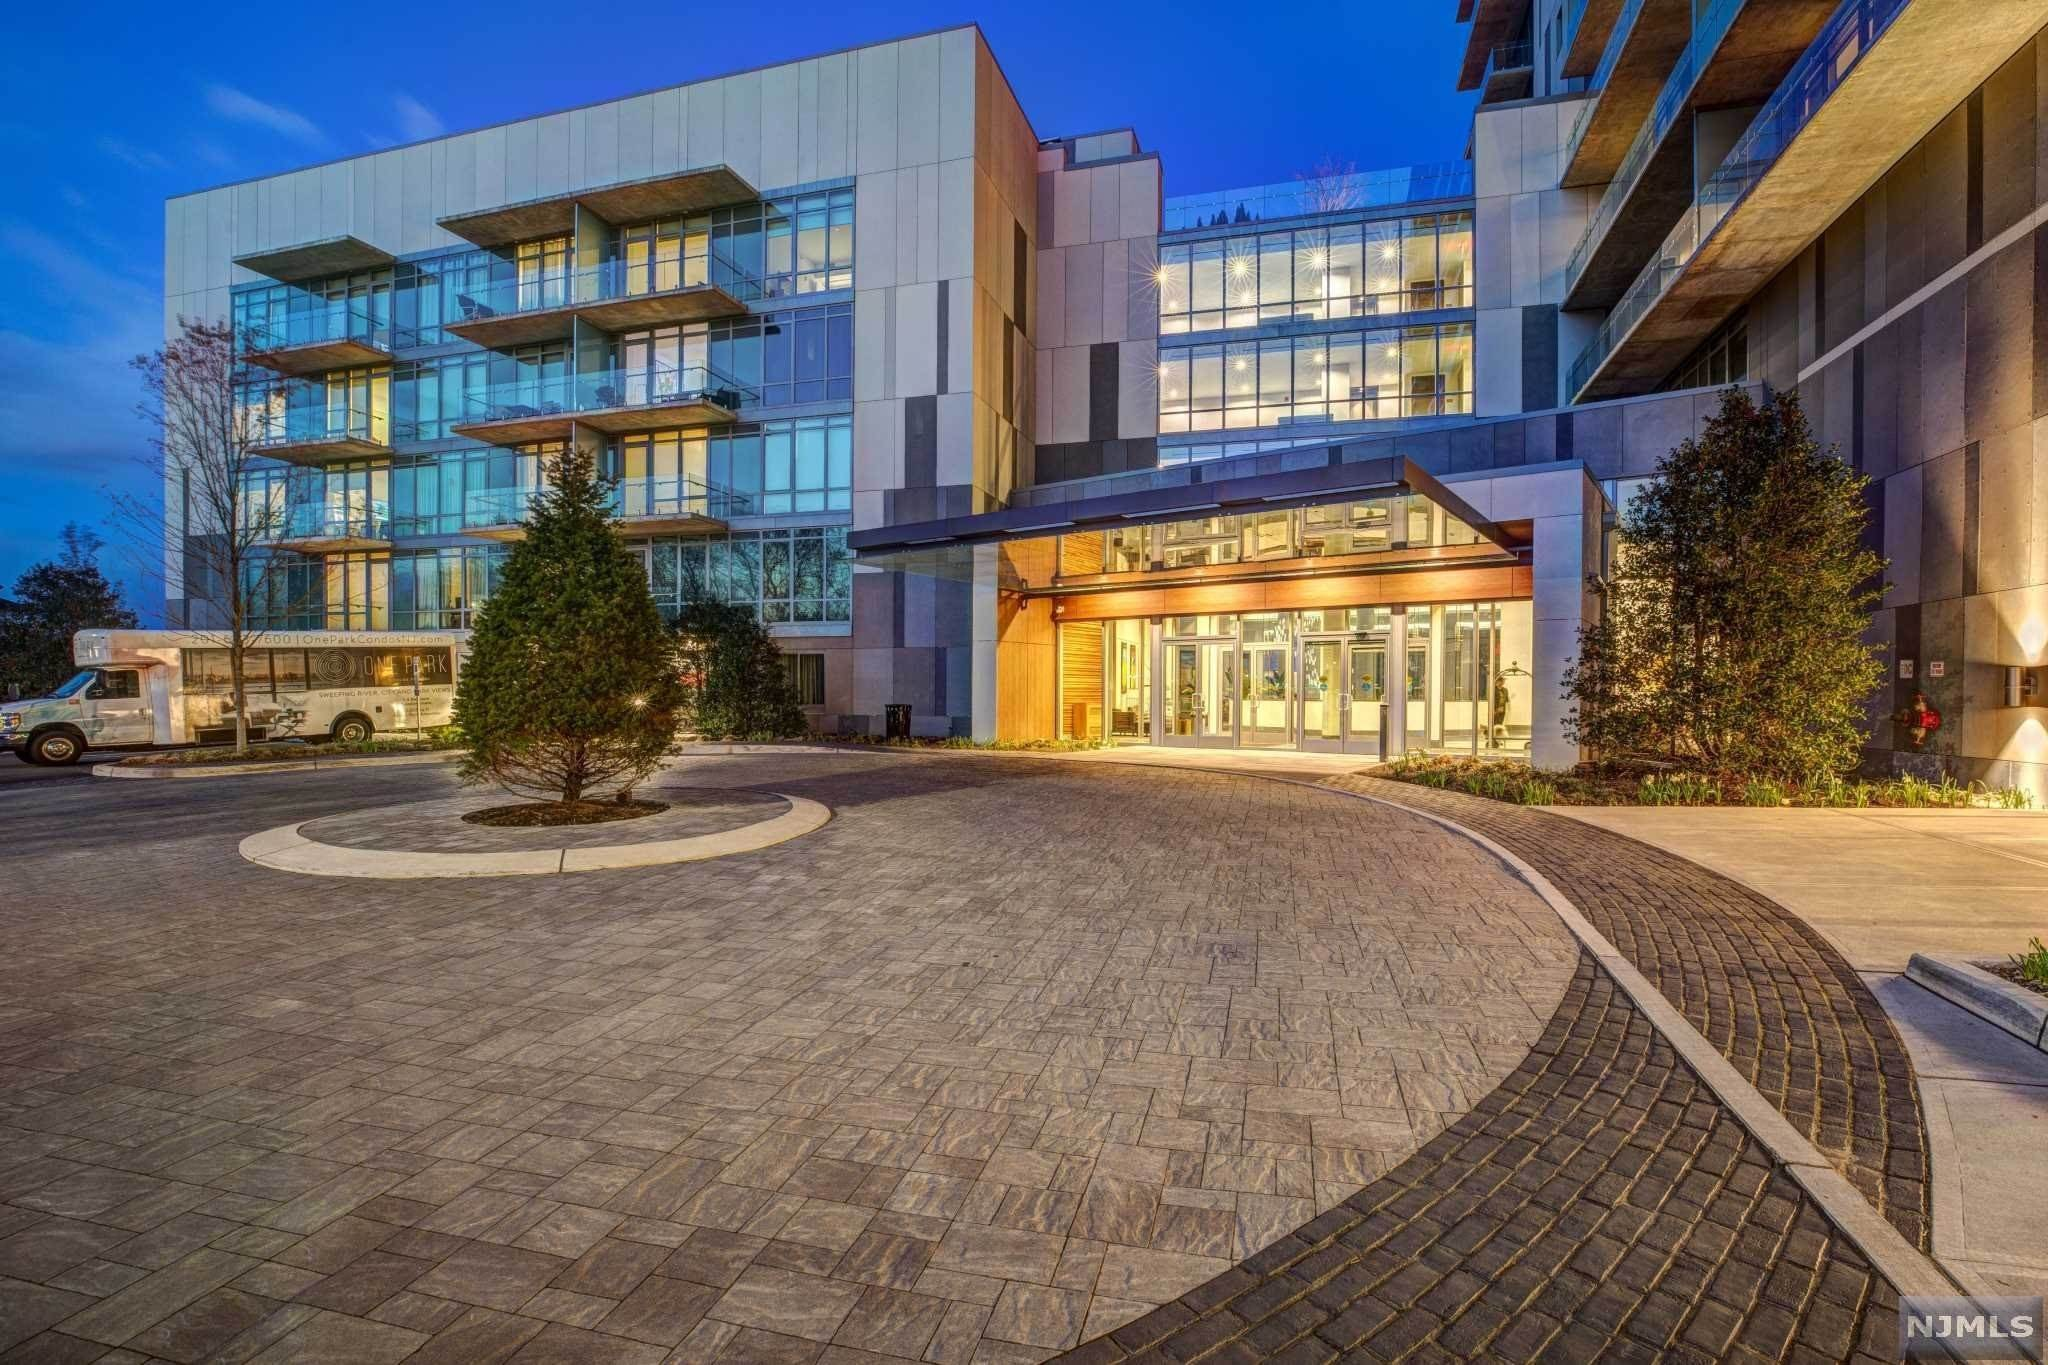 Condominium for Sale at 320 Adolphus Avenue #407 Cliffside Park, New Jersey, 07010 United States